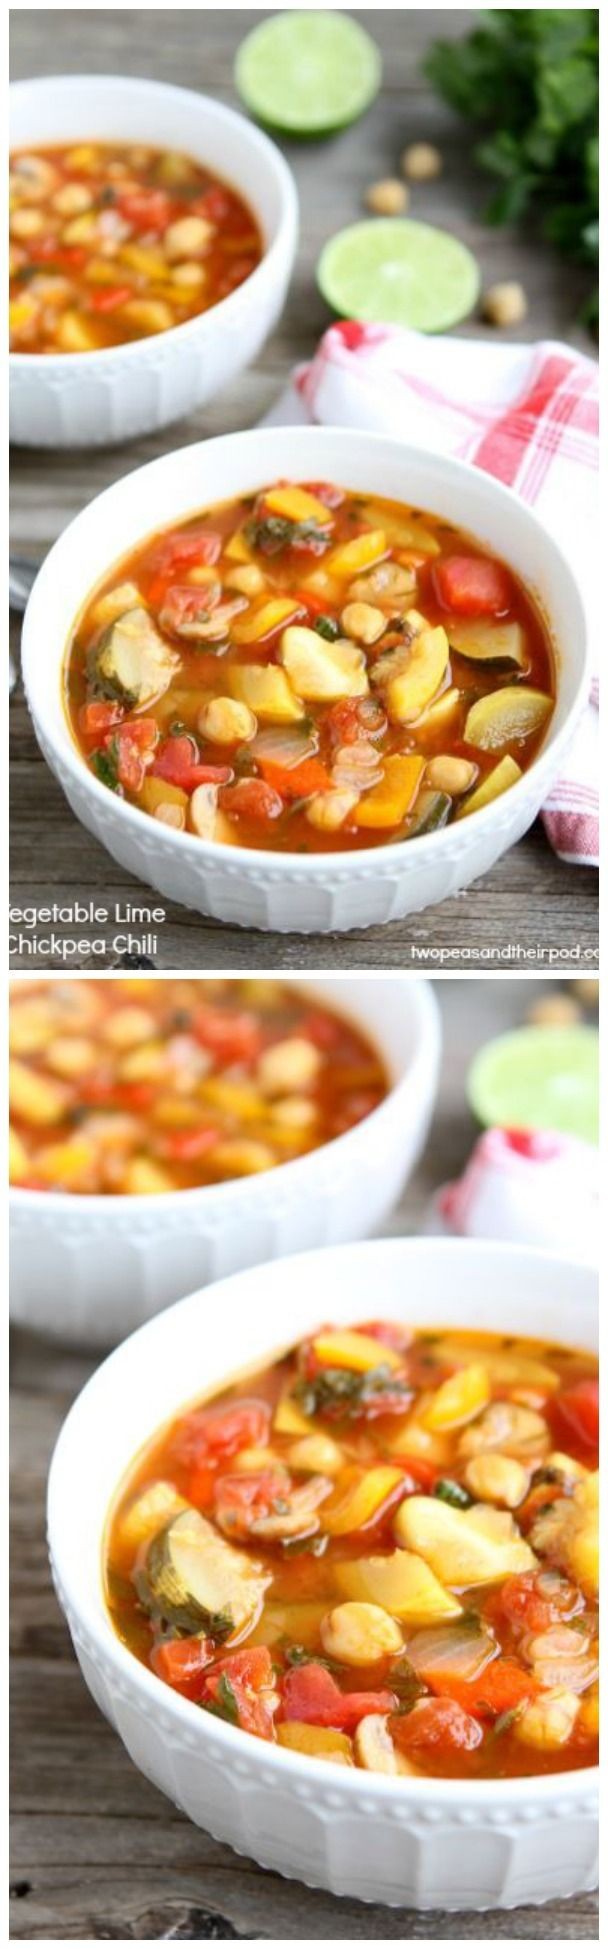 Vegetable Lime Chickpea Chili Recipe on twopeasandtheirpo... Love this healthy and easy chili!